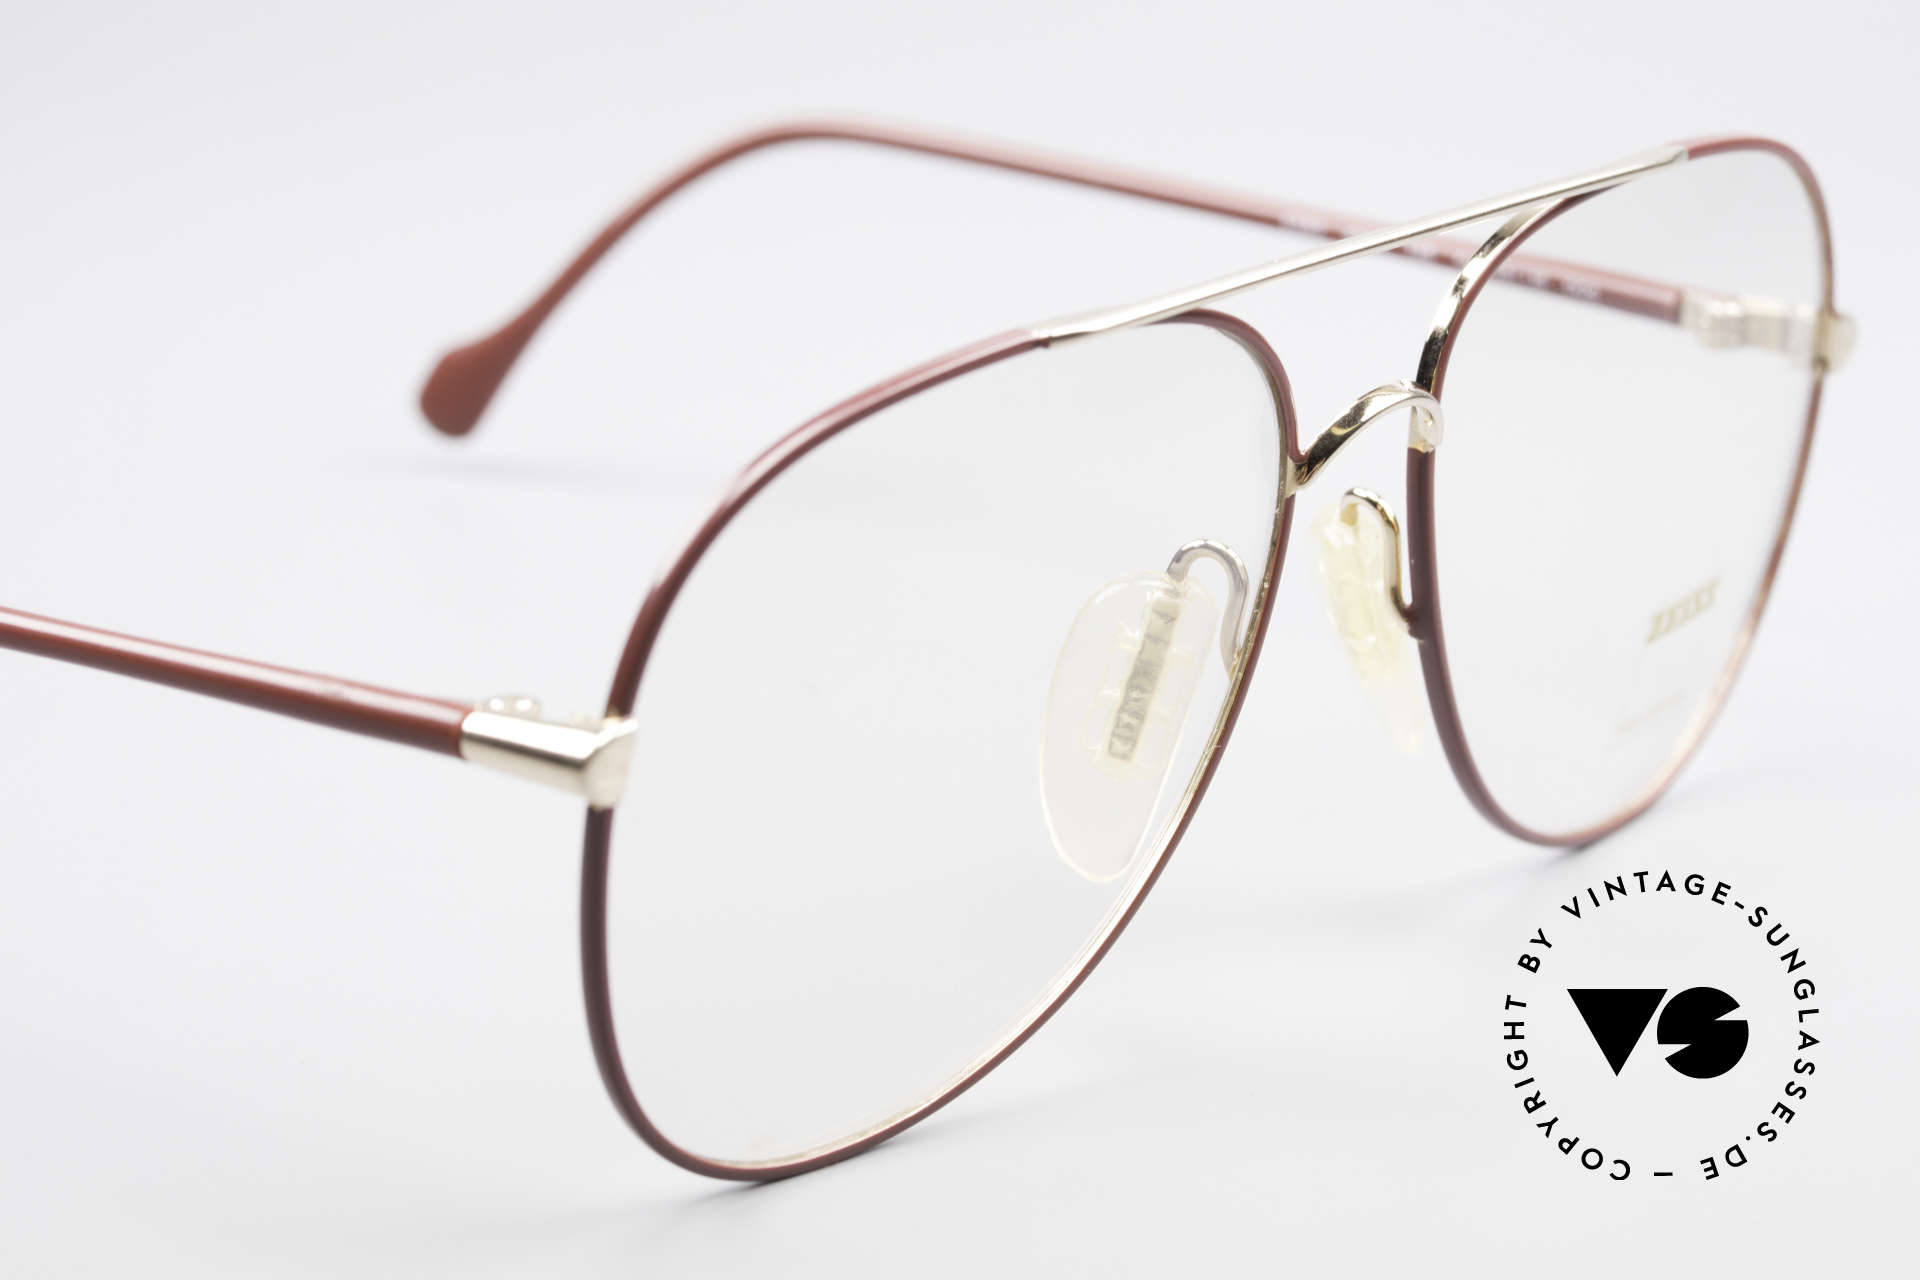 Zeiss 5882 Old 80's Eyeglass-Frame Men, NO RETRO specs, but a genuine 30 years old original, Made for Men